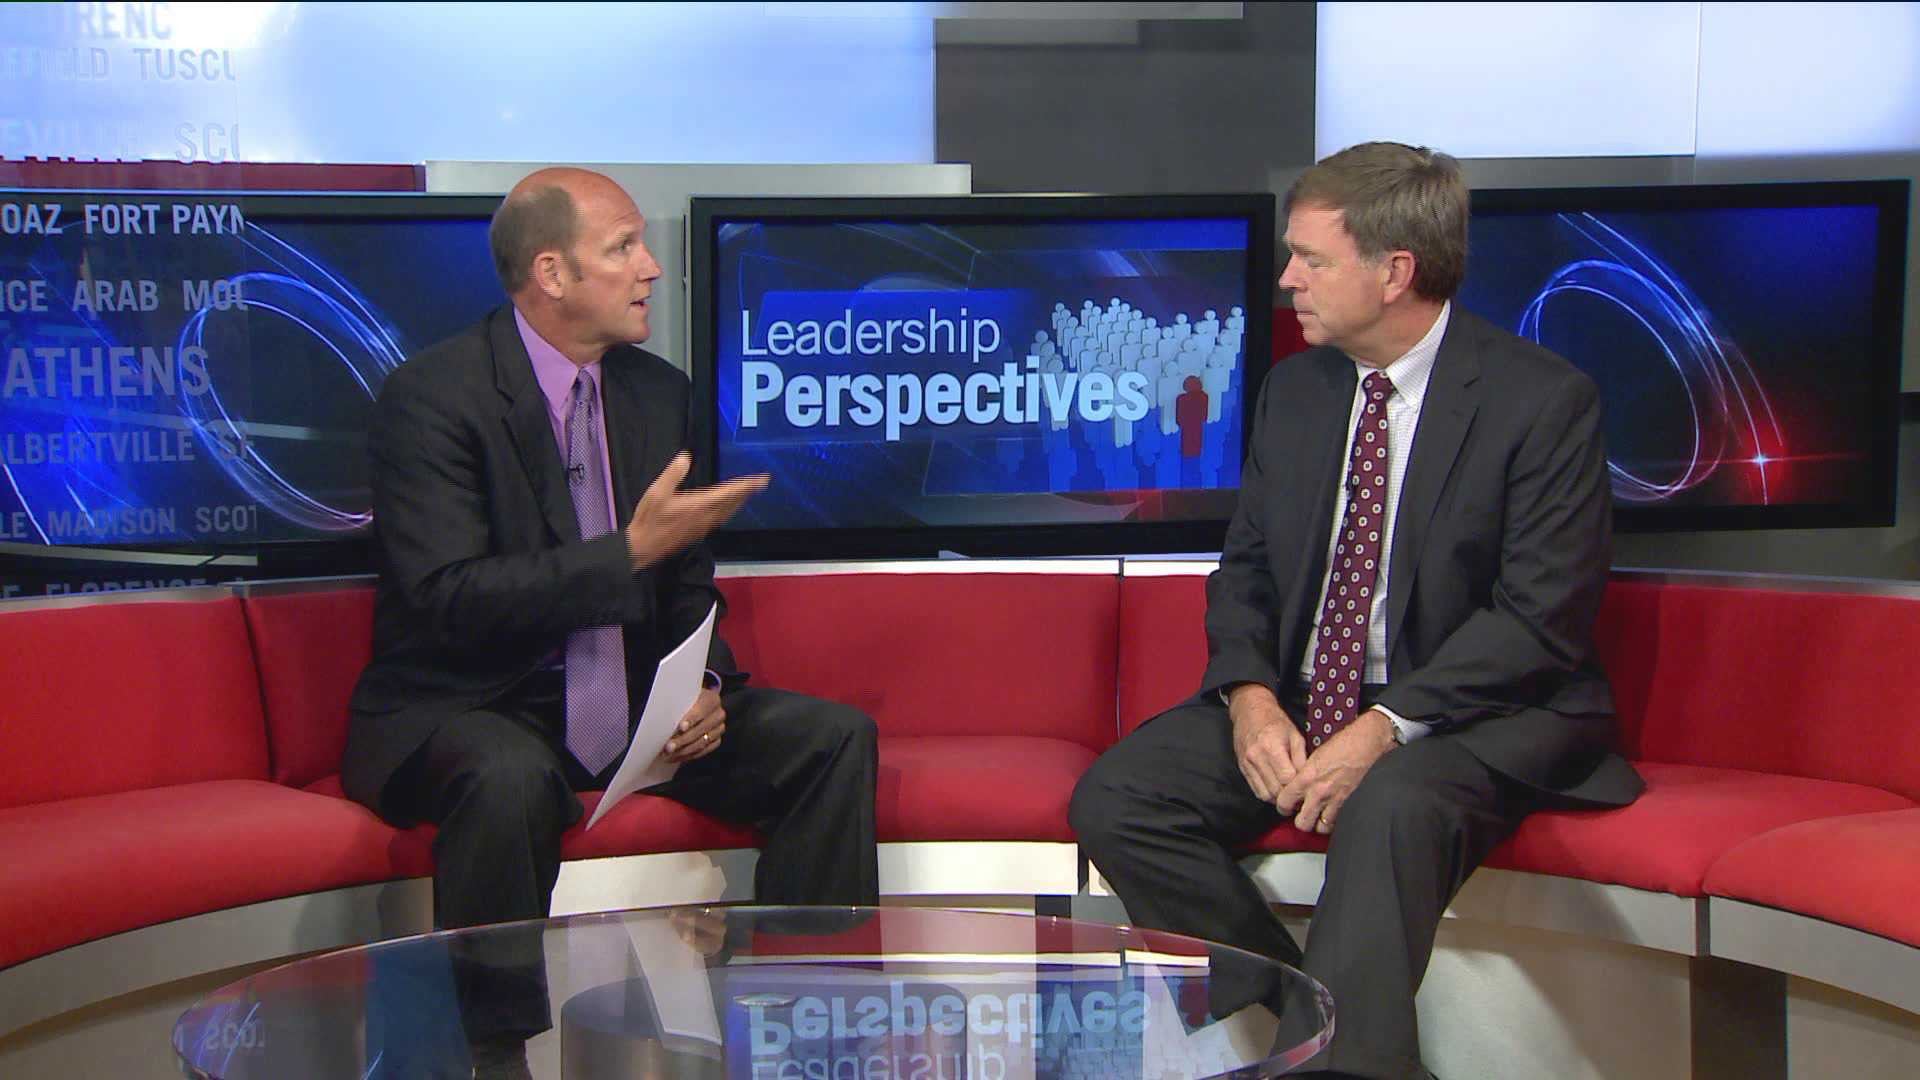 L to R: Paul Finley and Tommy Battle discuss city issues on WHNT News 19's Leadership Perspectives. (July 2013)